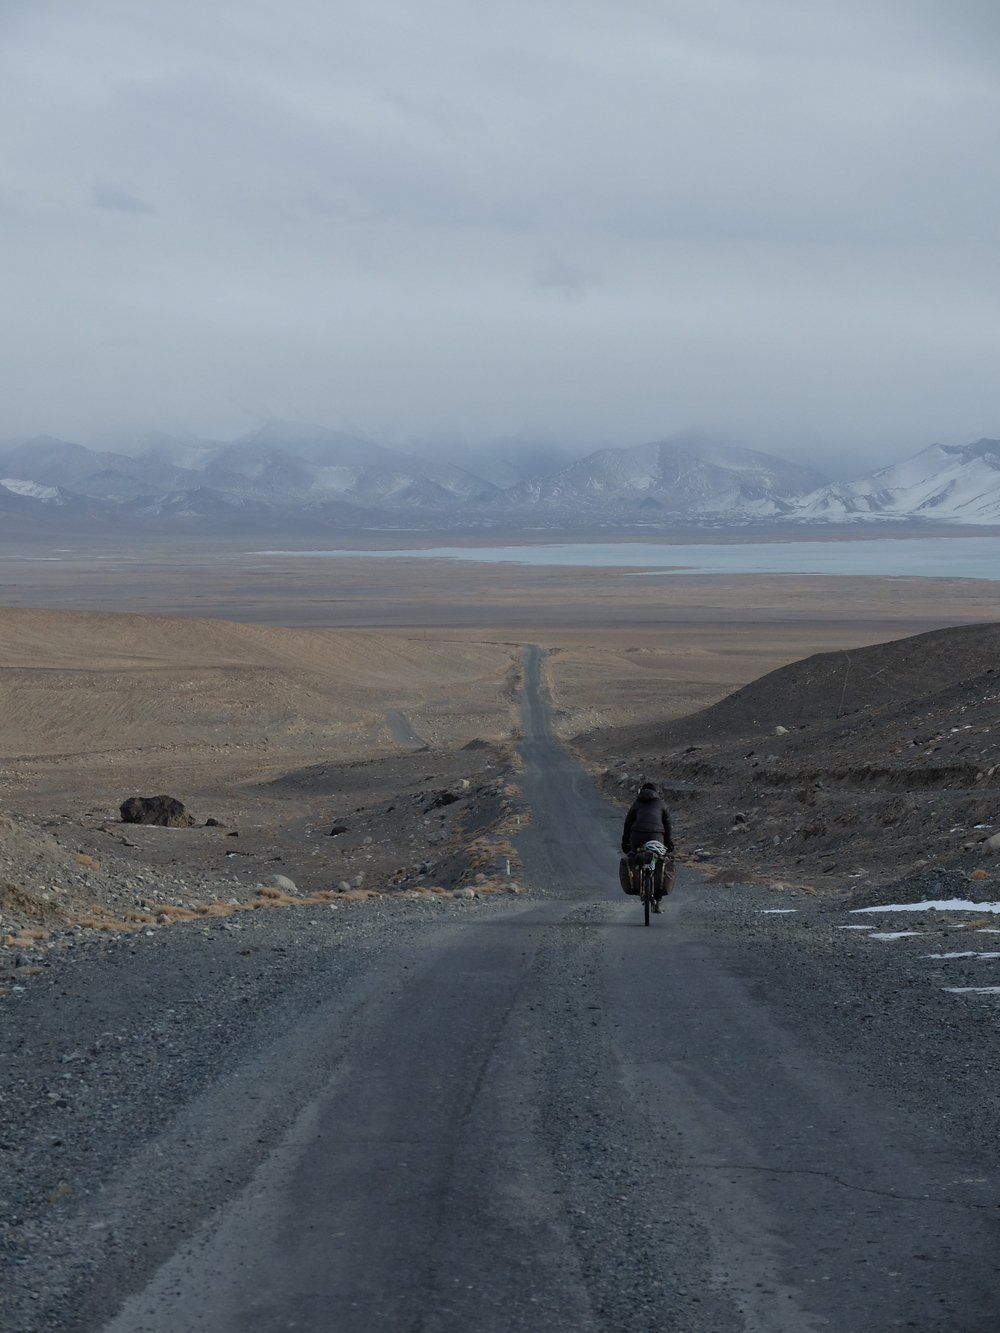 Descending towards Karakul after a long day